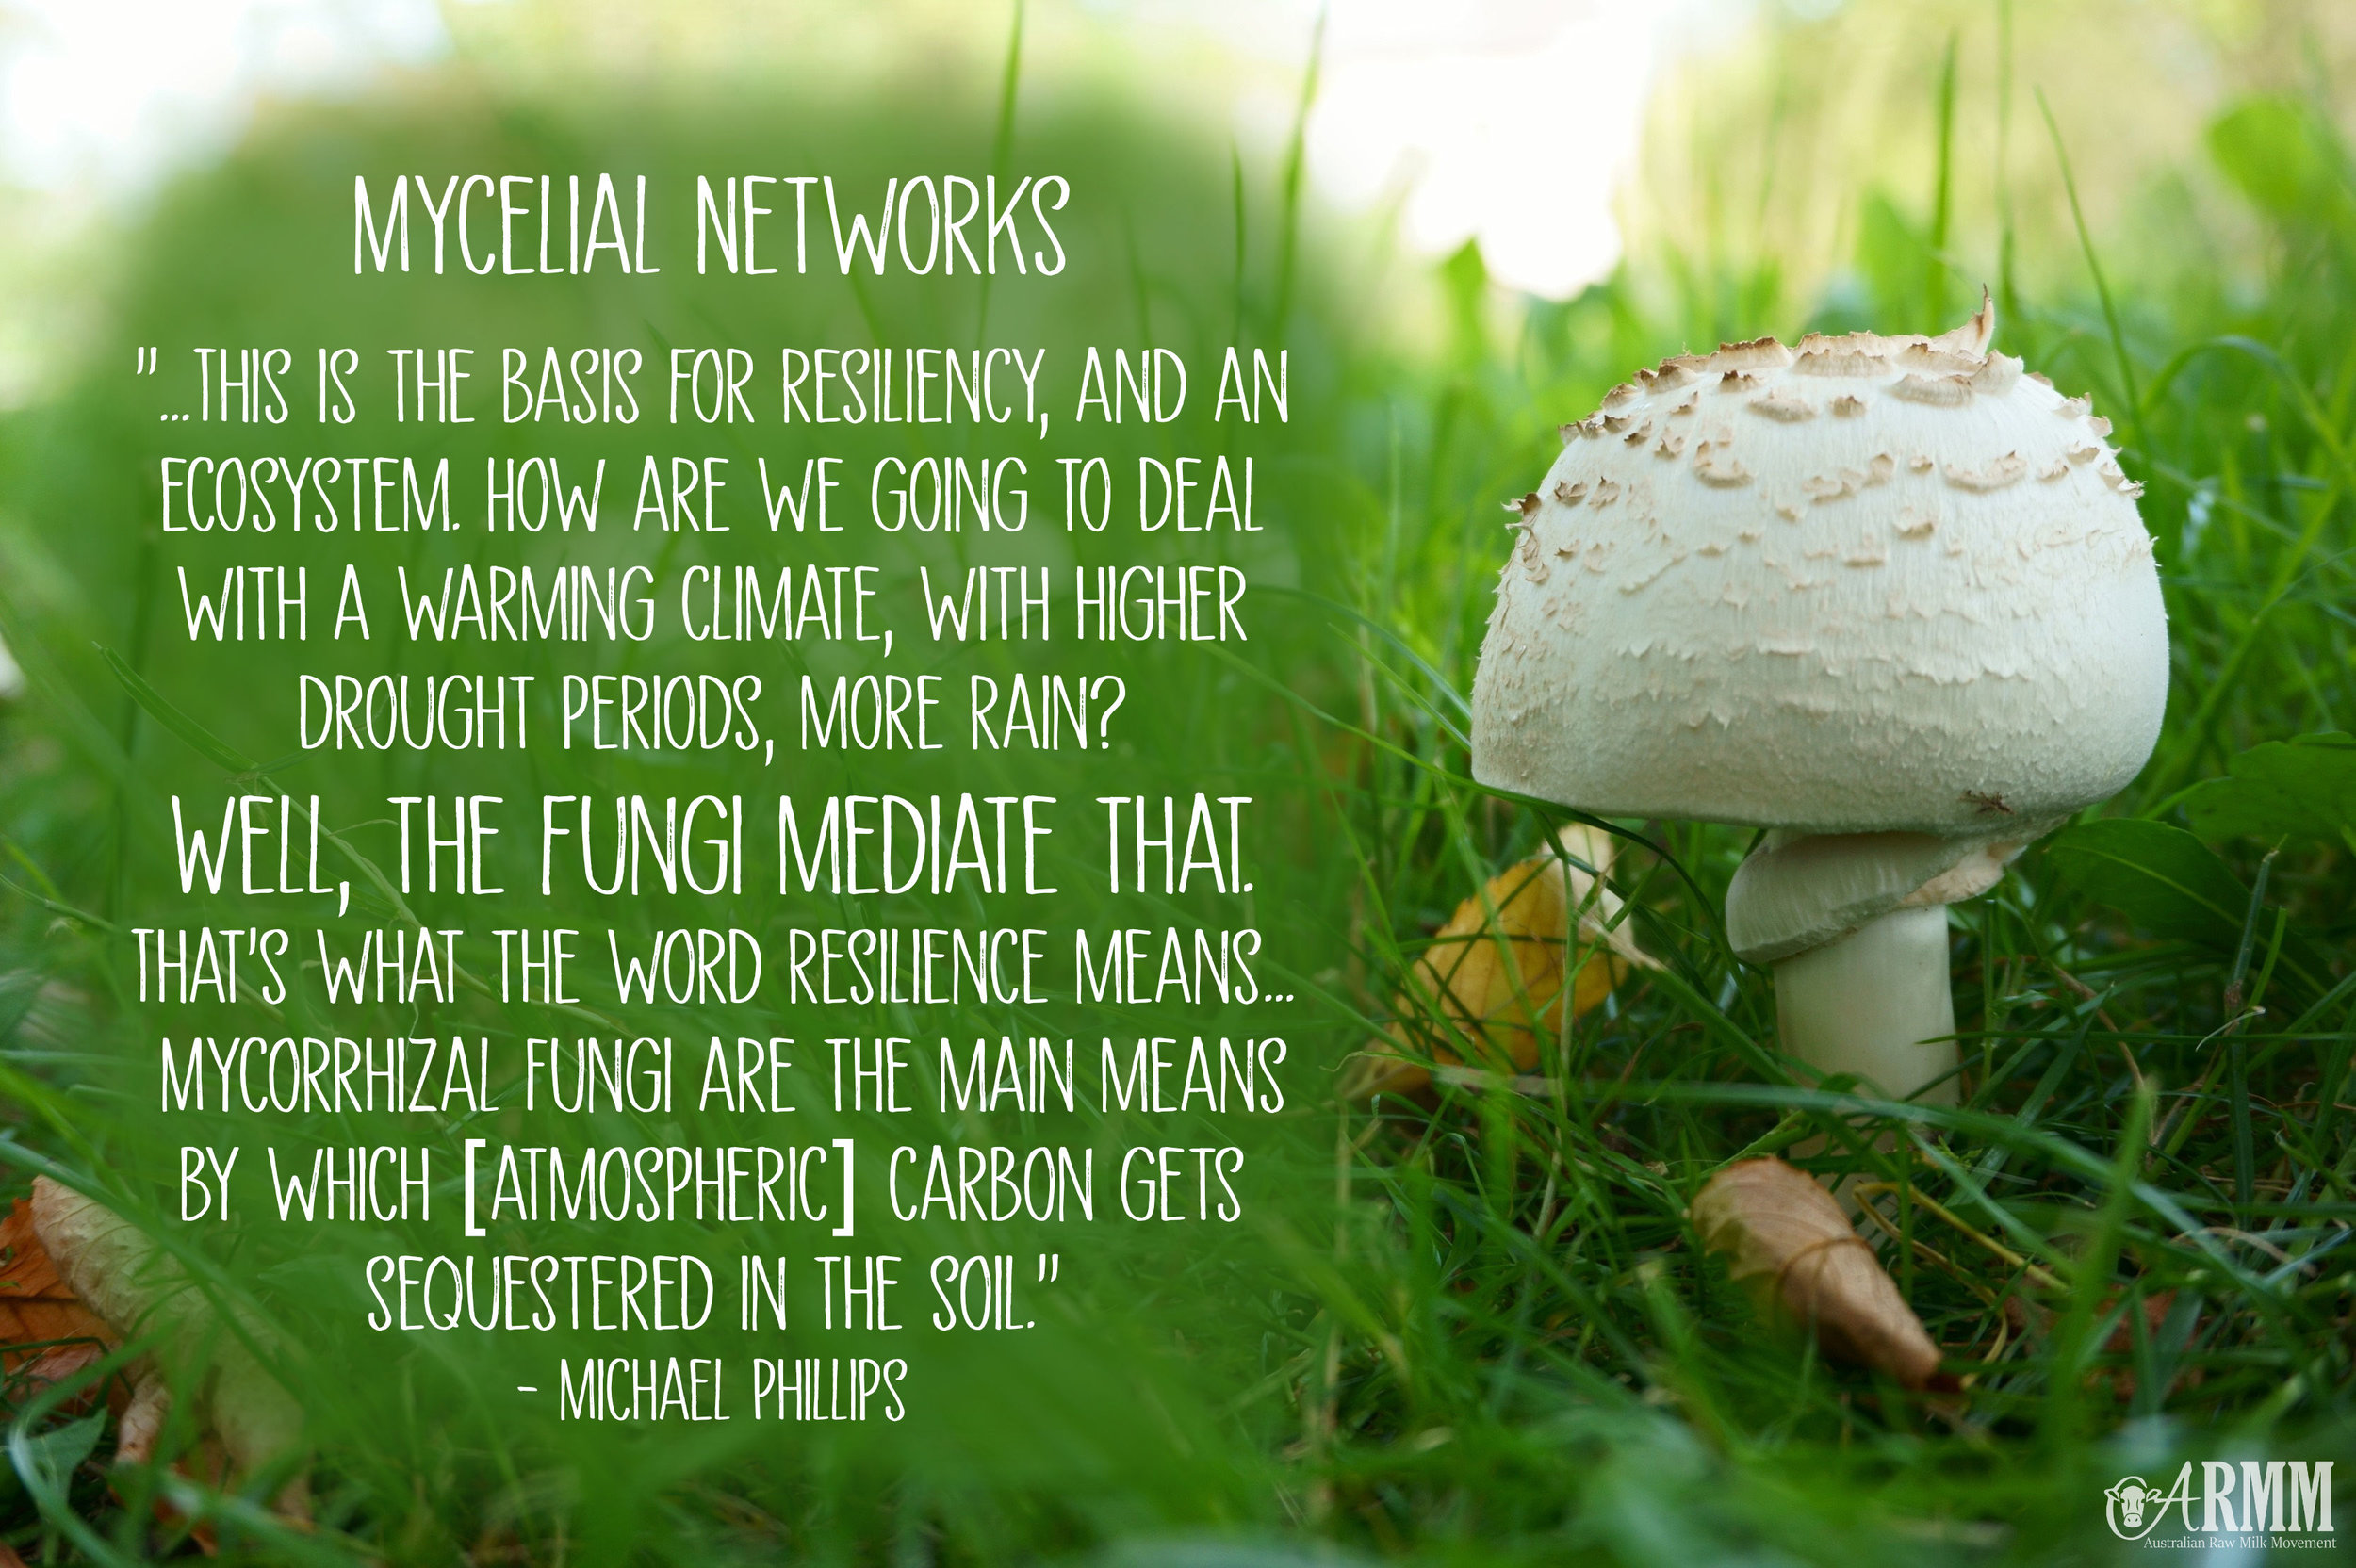 mycelial networks mycorrhizal fungi regenerative farming sequester carbon